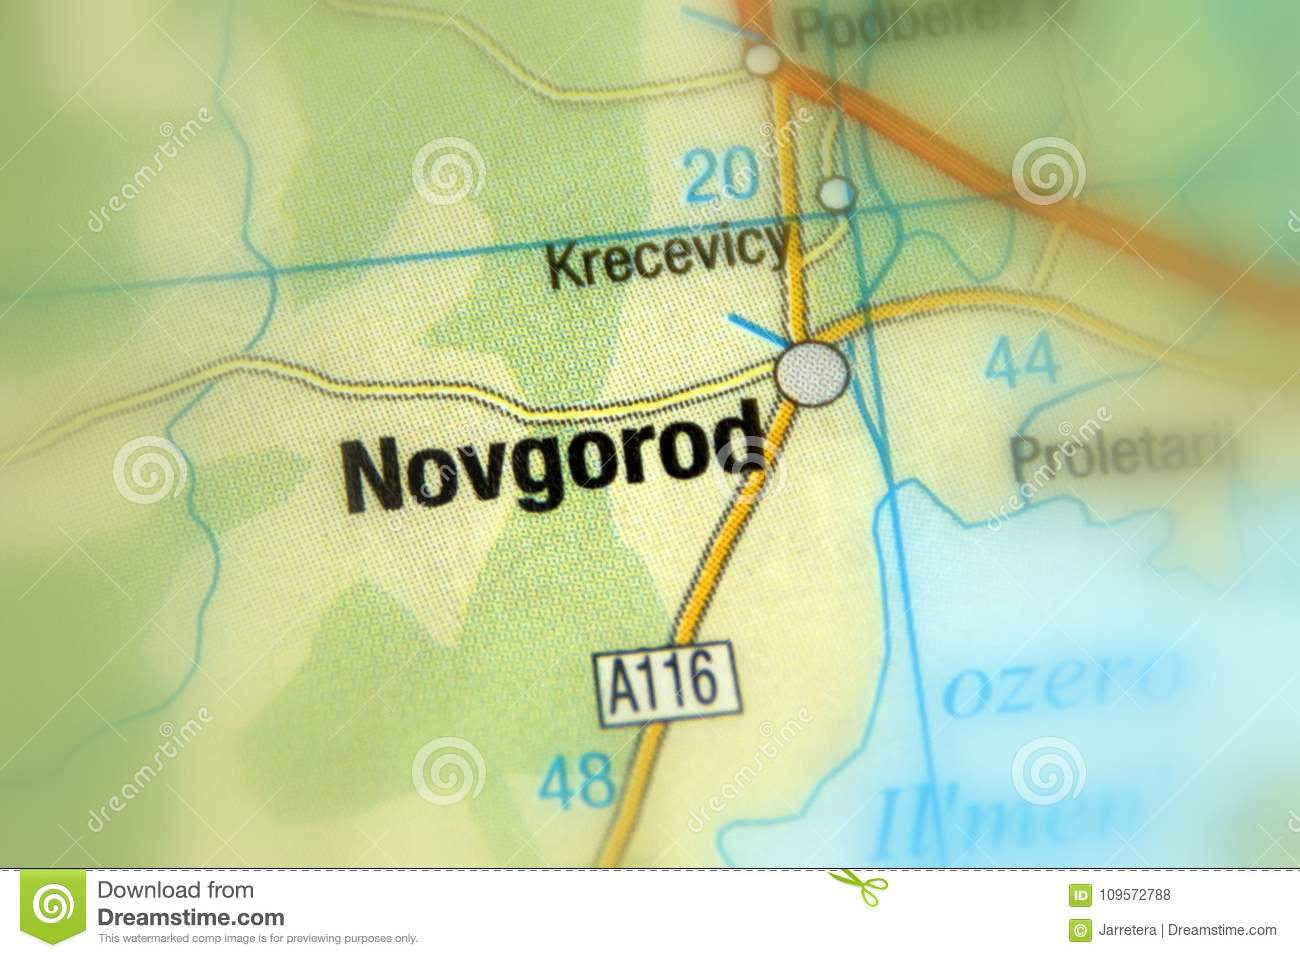 Novgorod Russia Map.Novgorod Russia Eurasia Stock Photo Image Of Town 109572788